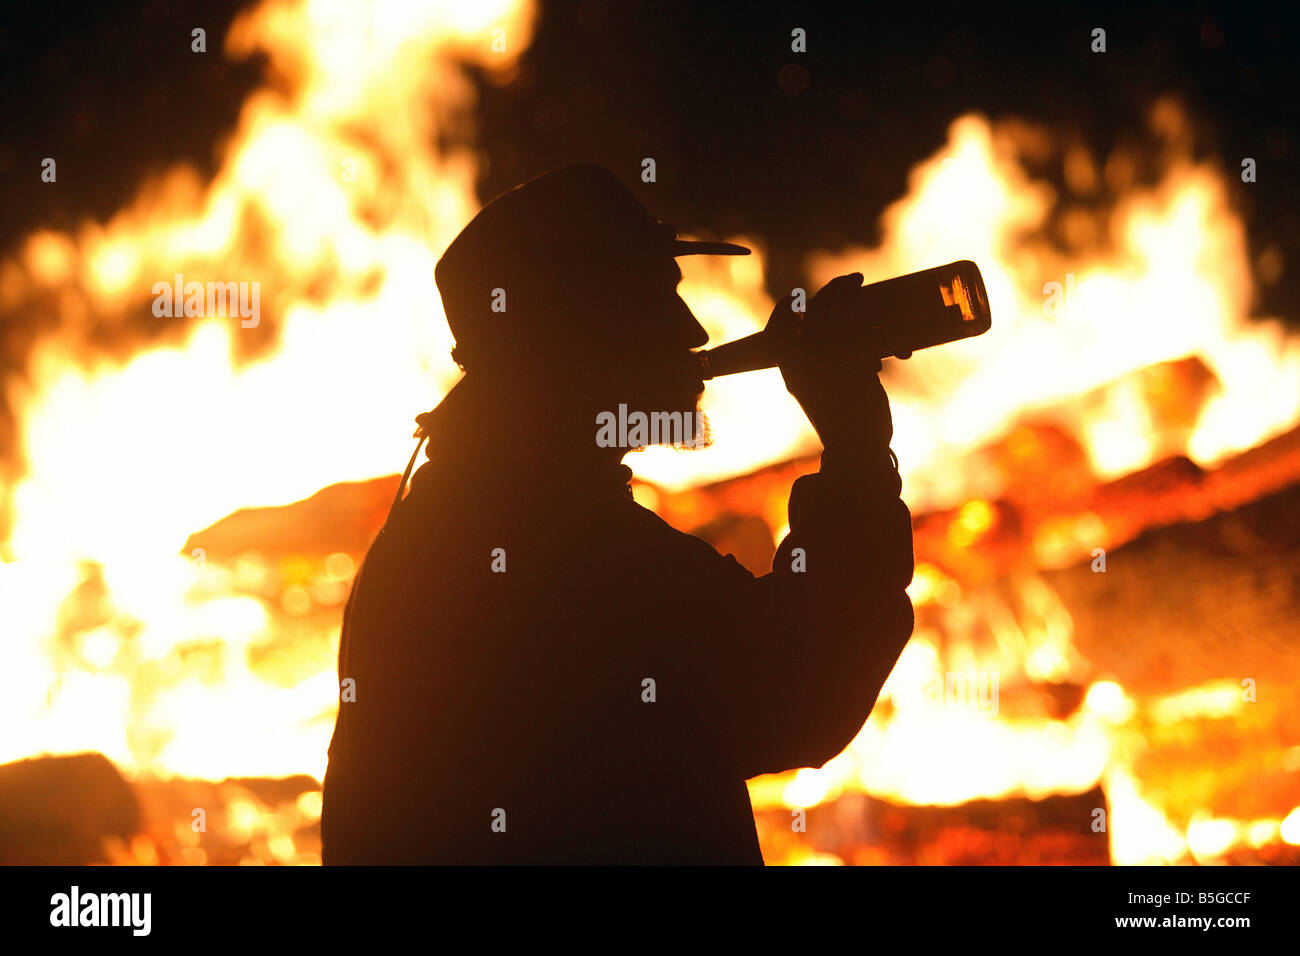 Silhouette of a man with a cowboy hat drinking beer near a bonfire - Stock Image